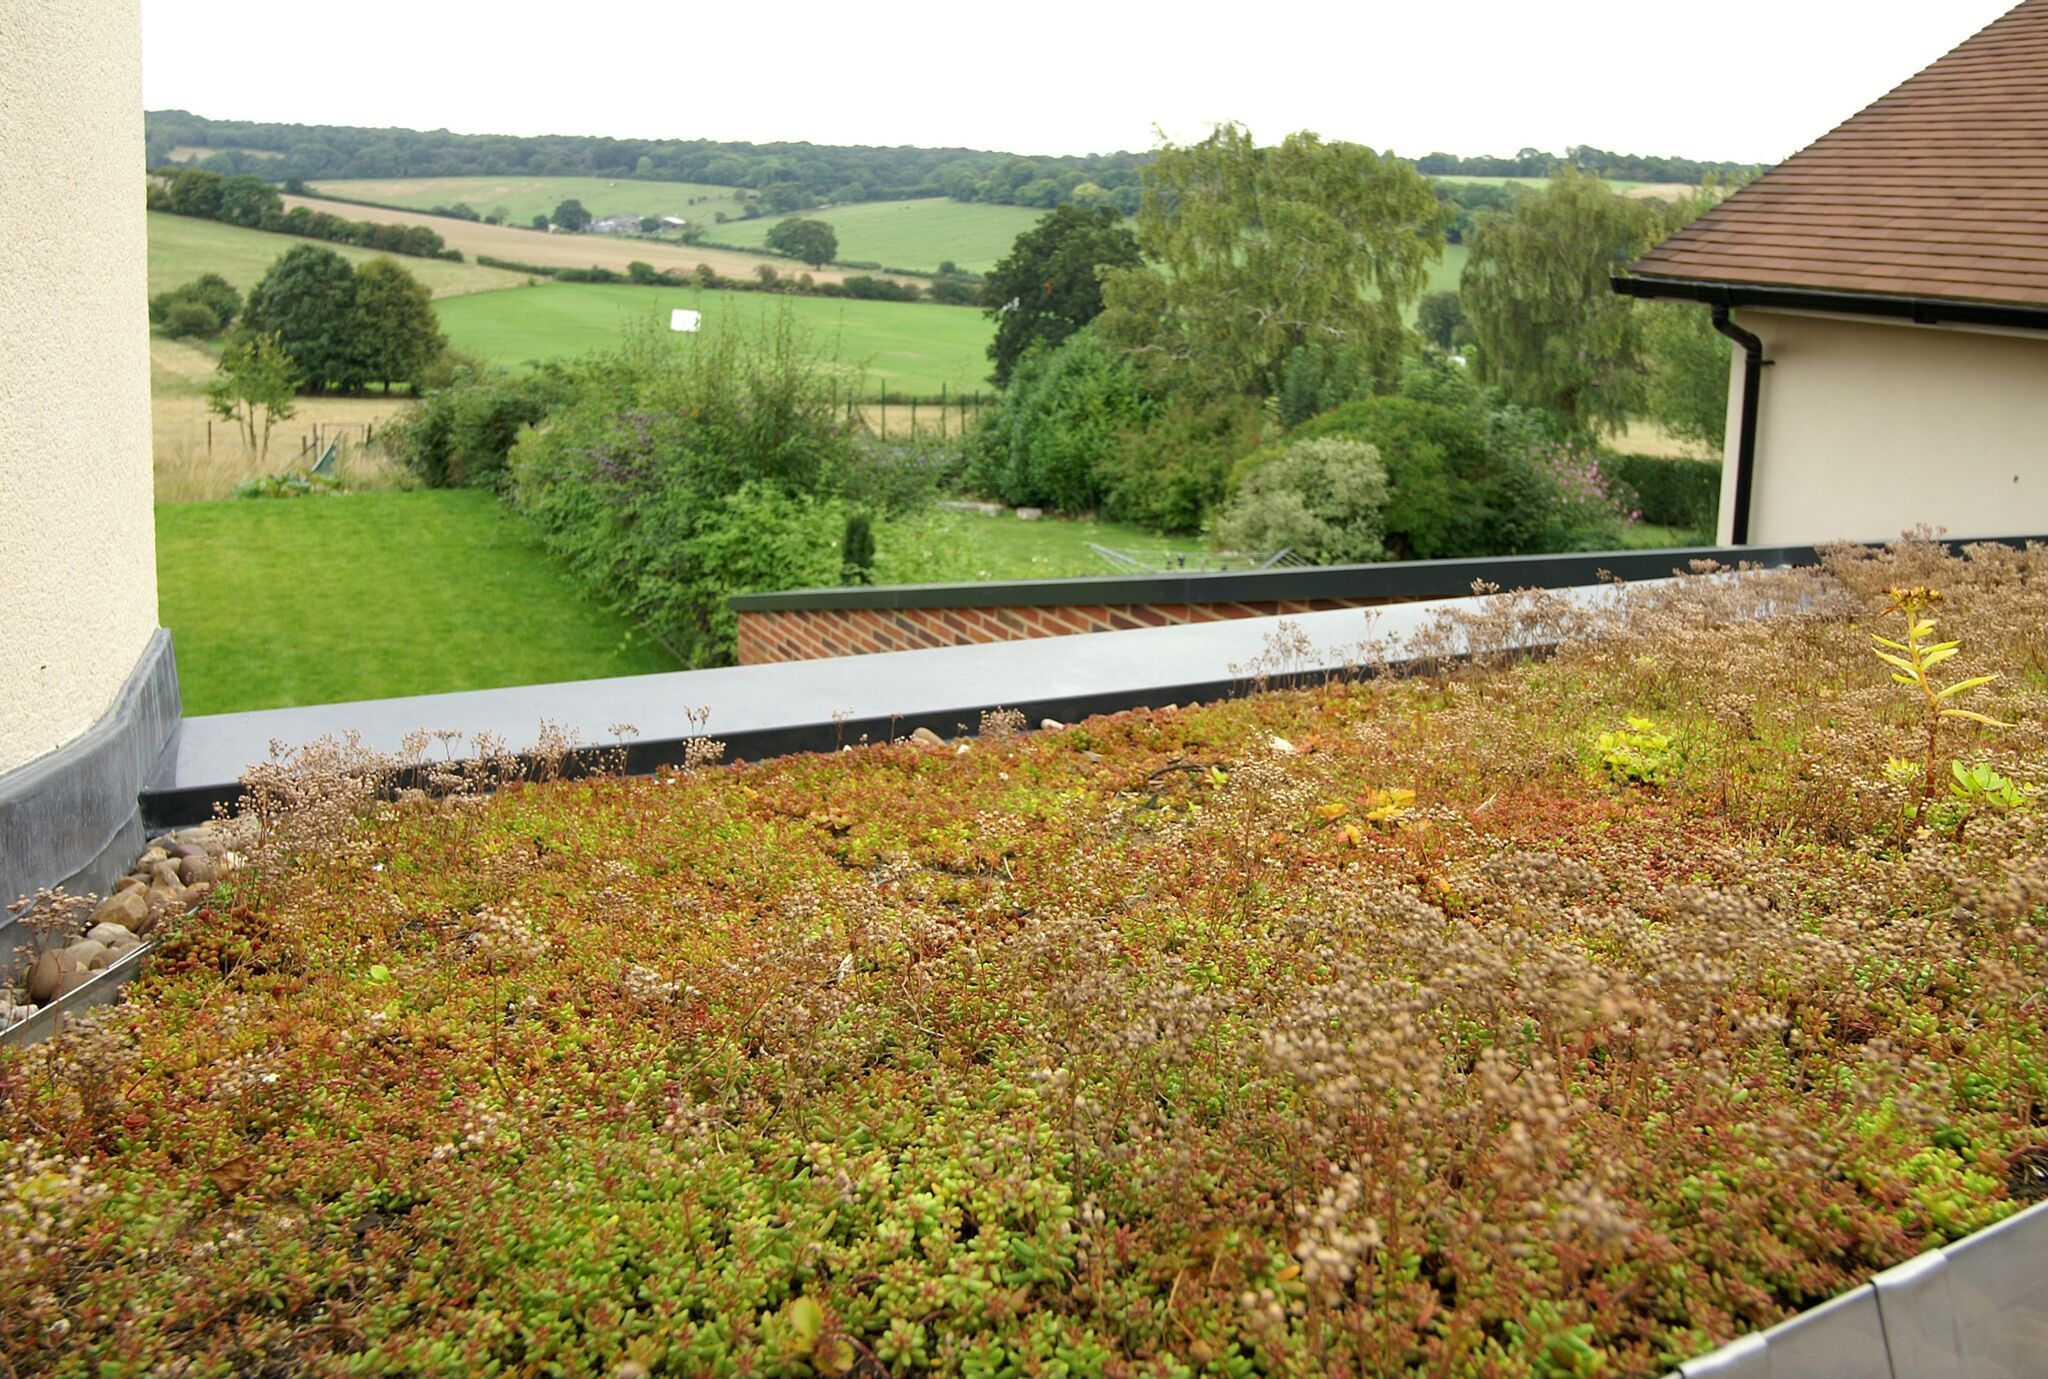 Single Ply Green Roof Installations Roof Assured By Sika